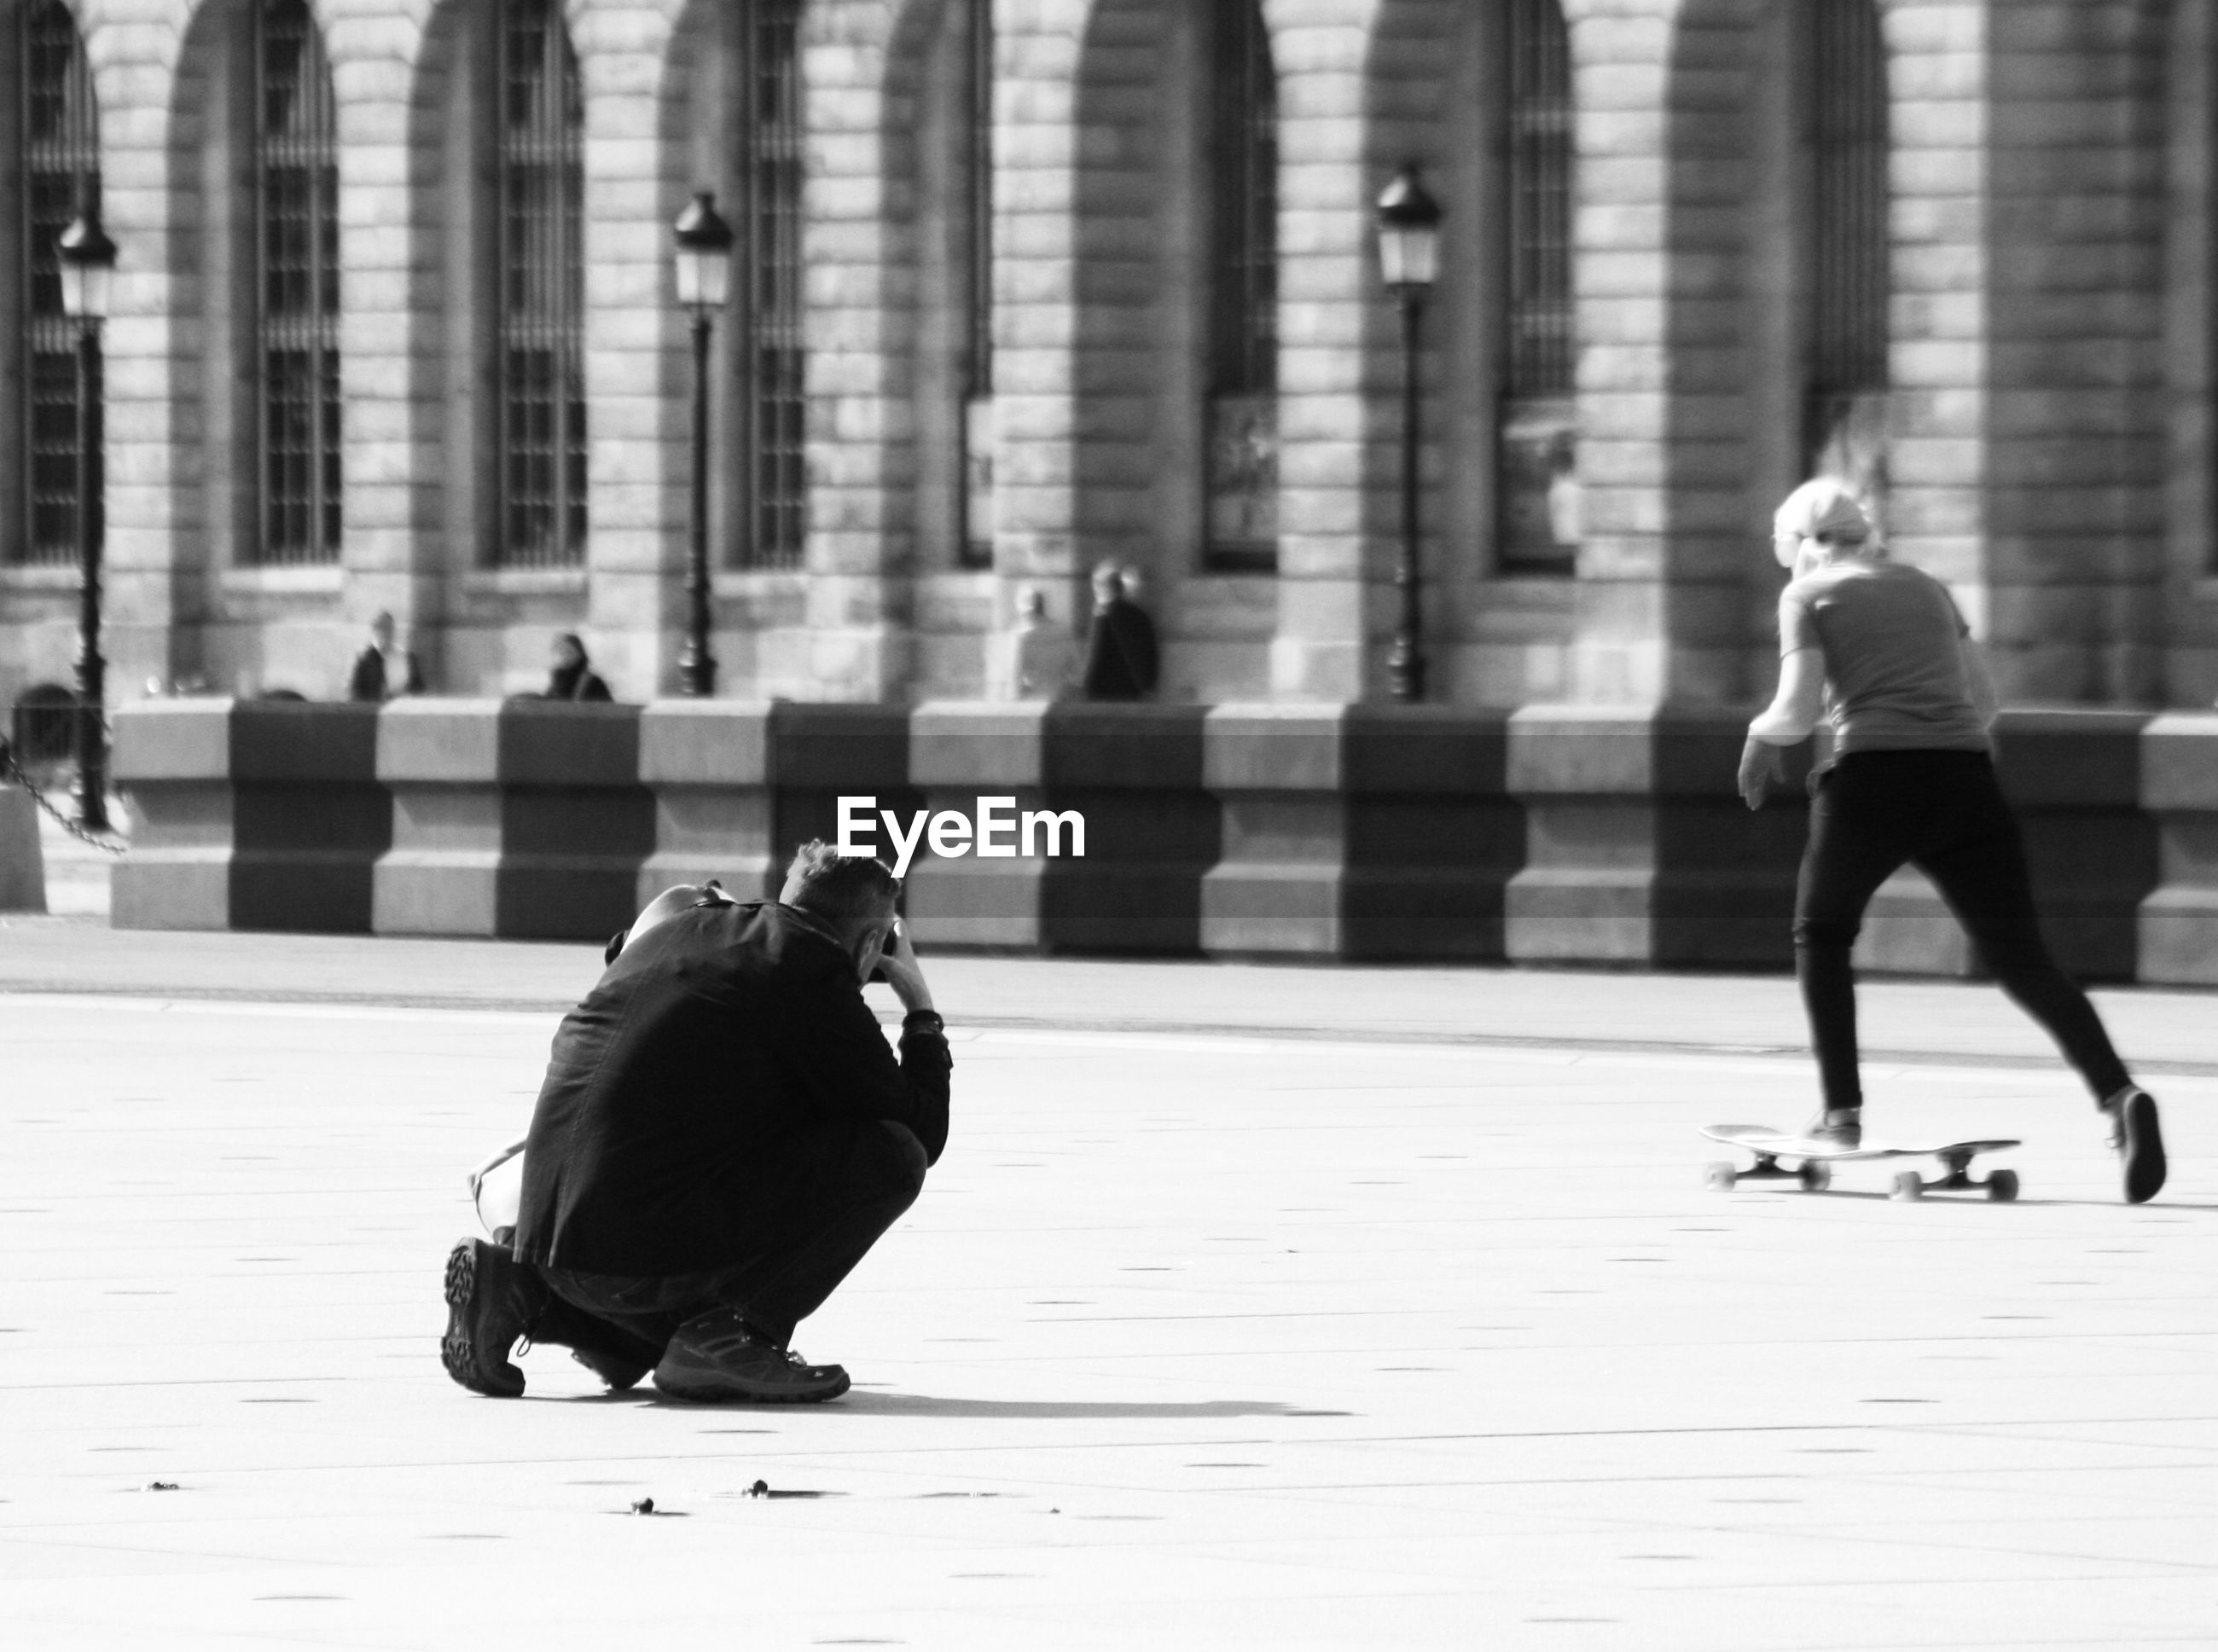 Man photographing while woman skateboarding in city